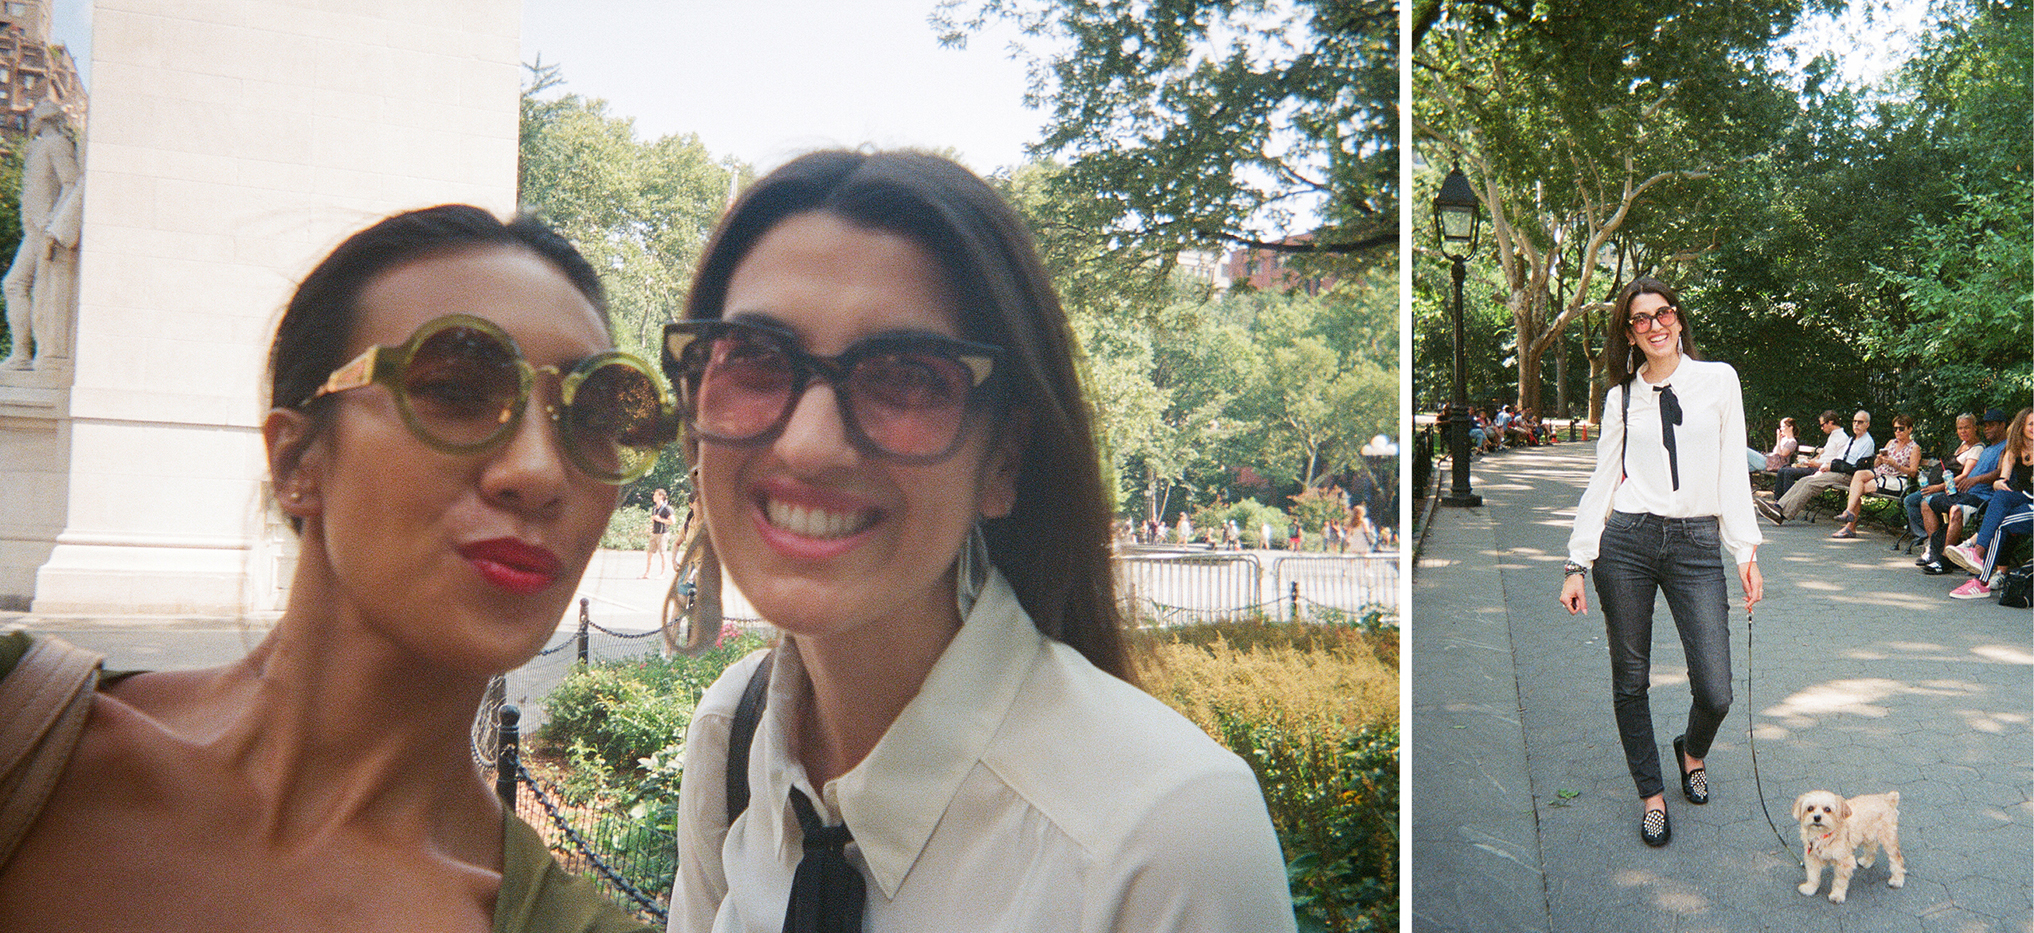 Impromptu stroll in Washington Square Park with Manuela and Ninja. I love when friends work in the neighborhood.